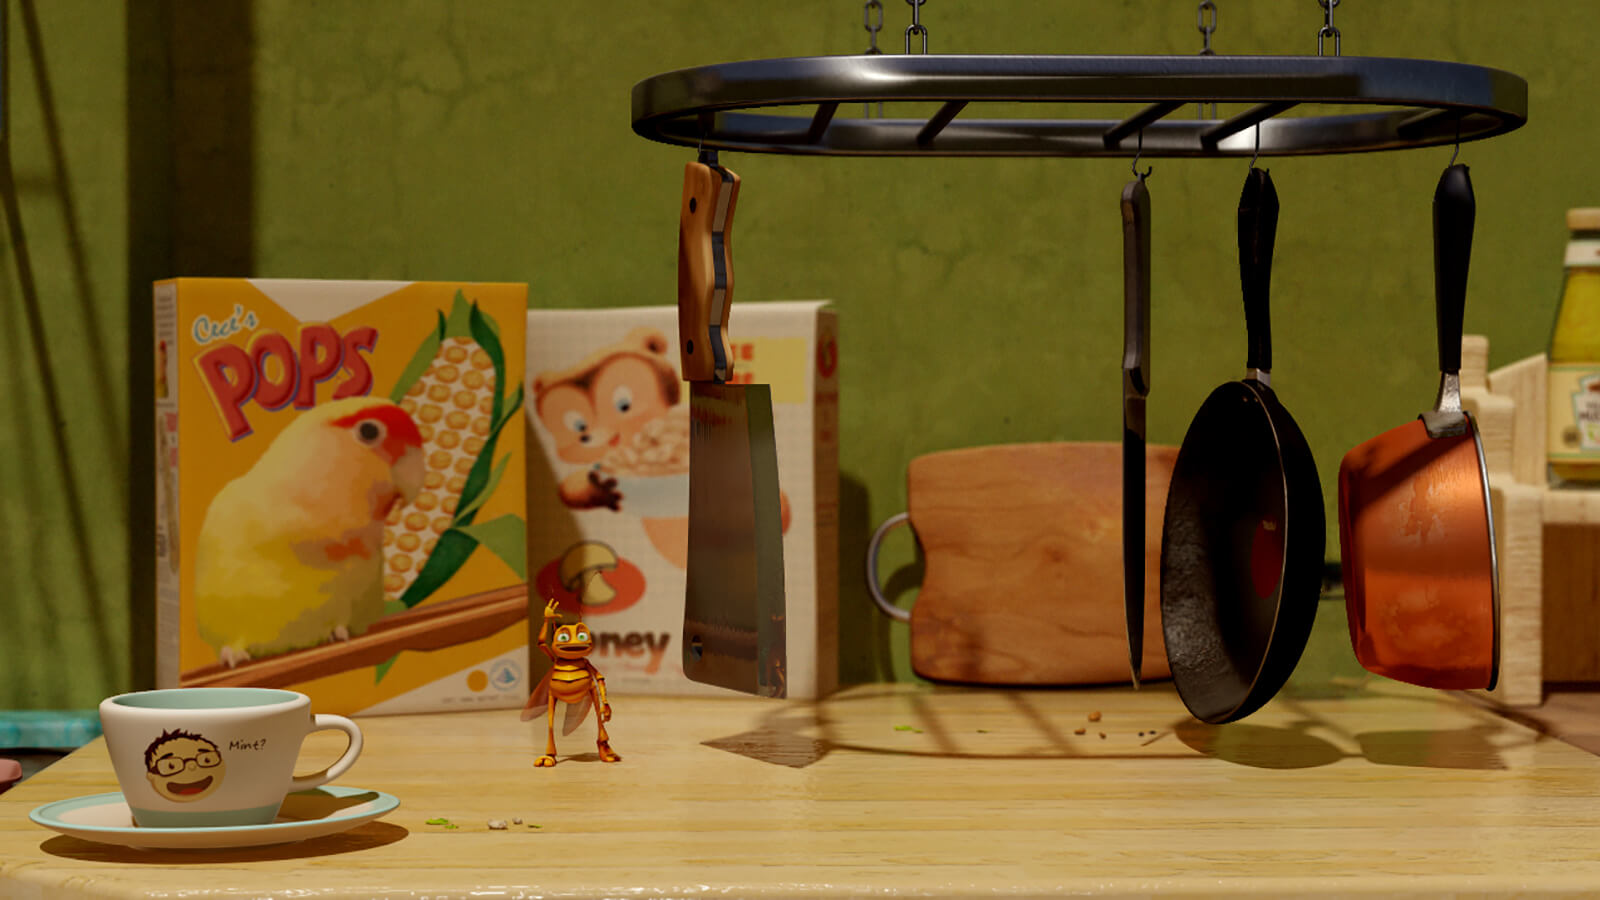 A CG-animated roach stands and waves at the viewer in front of cereal boxes, a teacup, and hanging knives and pans.